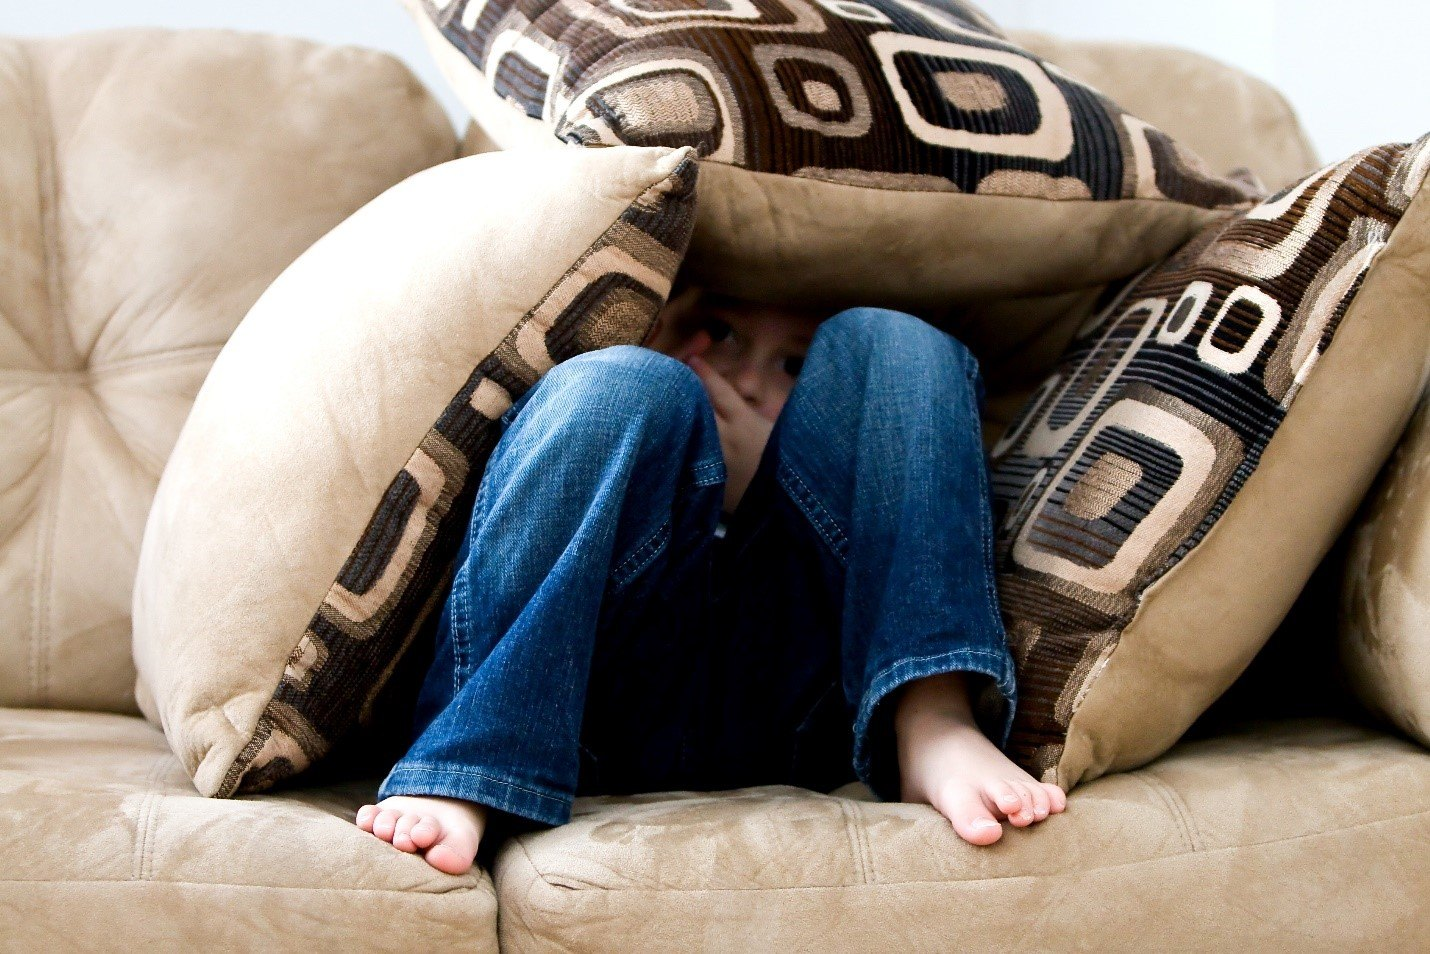 Young child hiding behind pillows on a couch